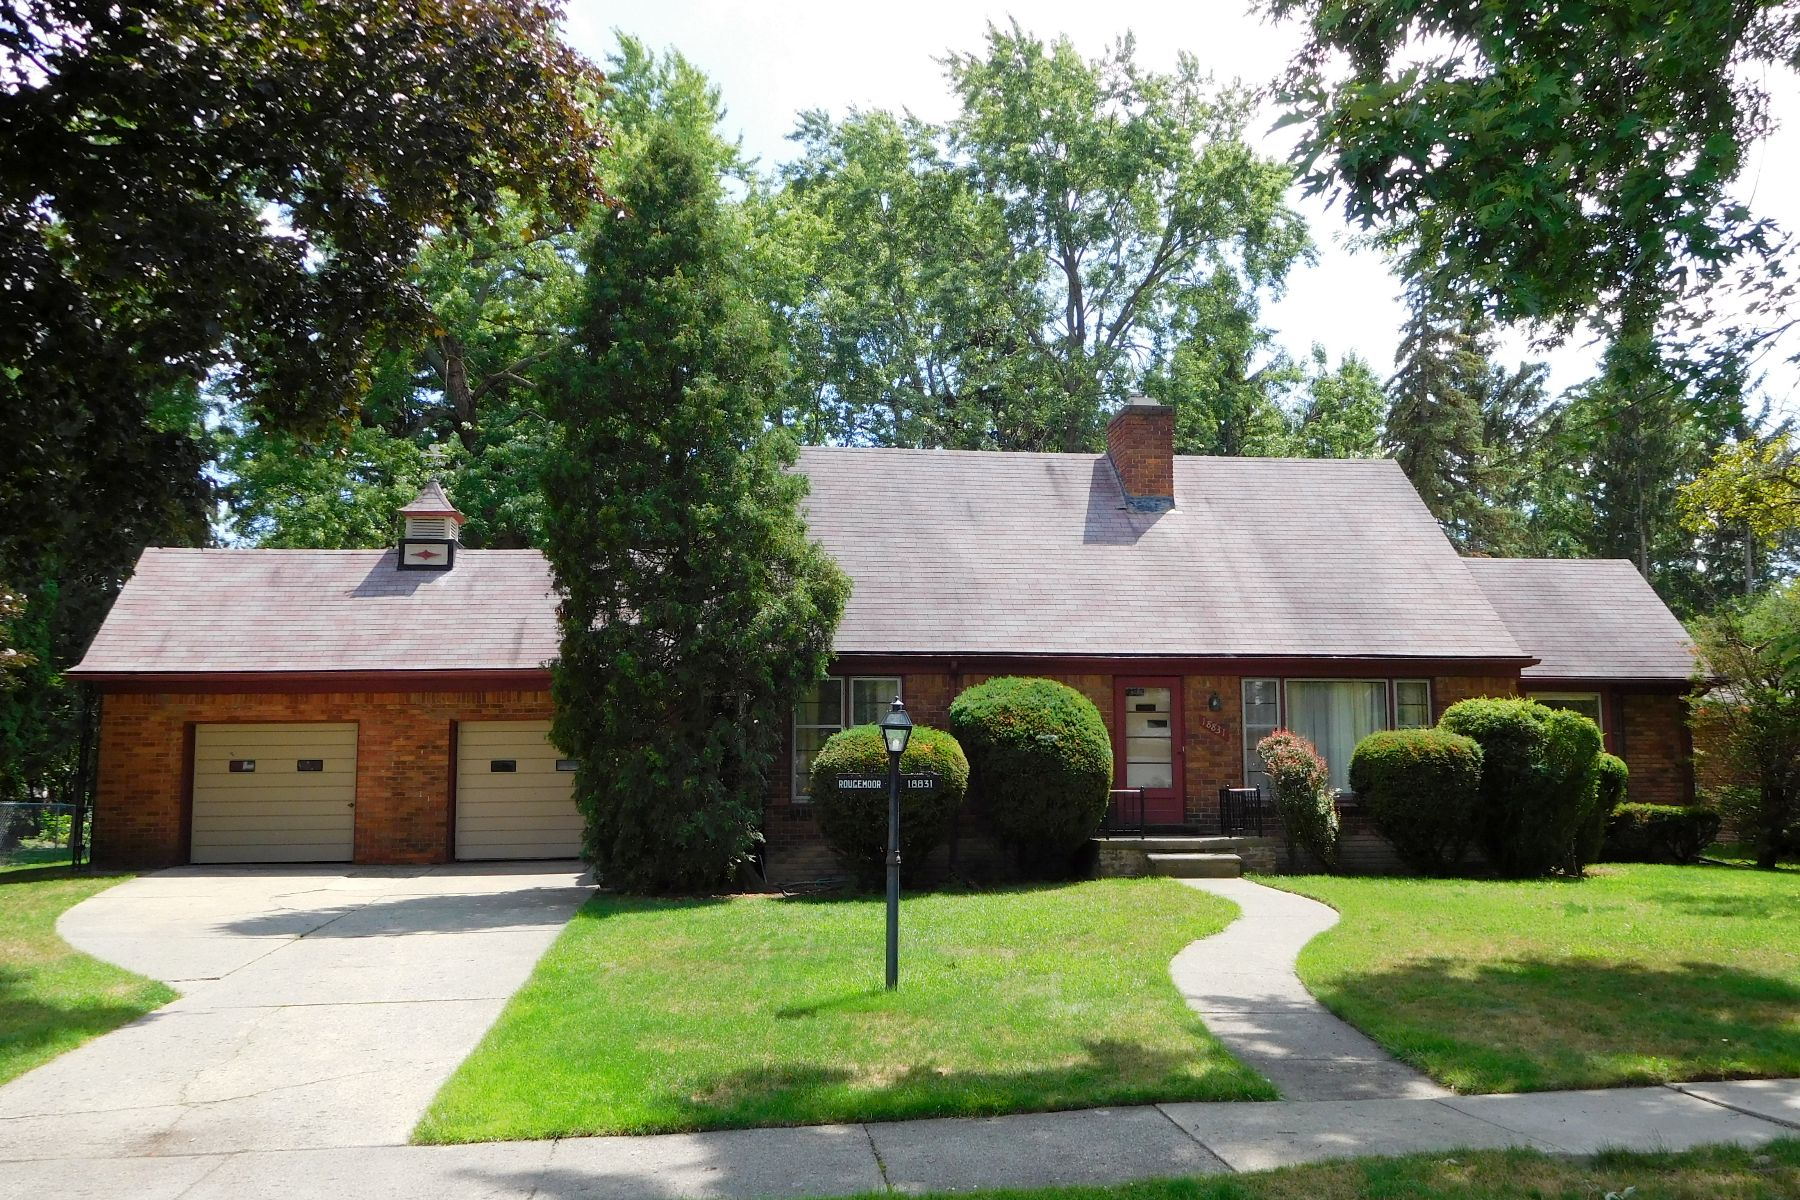 Single Family Home for Sale at Lathrup Vlg 18831 Bungalow Dr Southfield, Michigan, 48076 United States